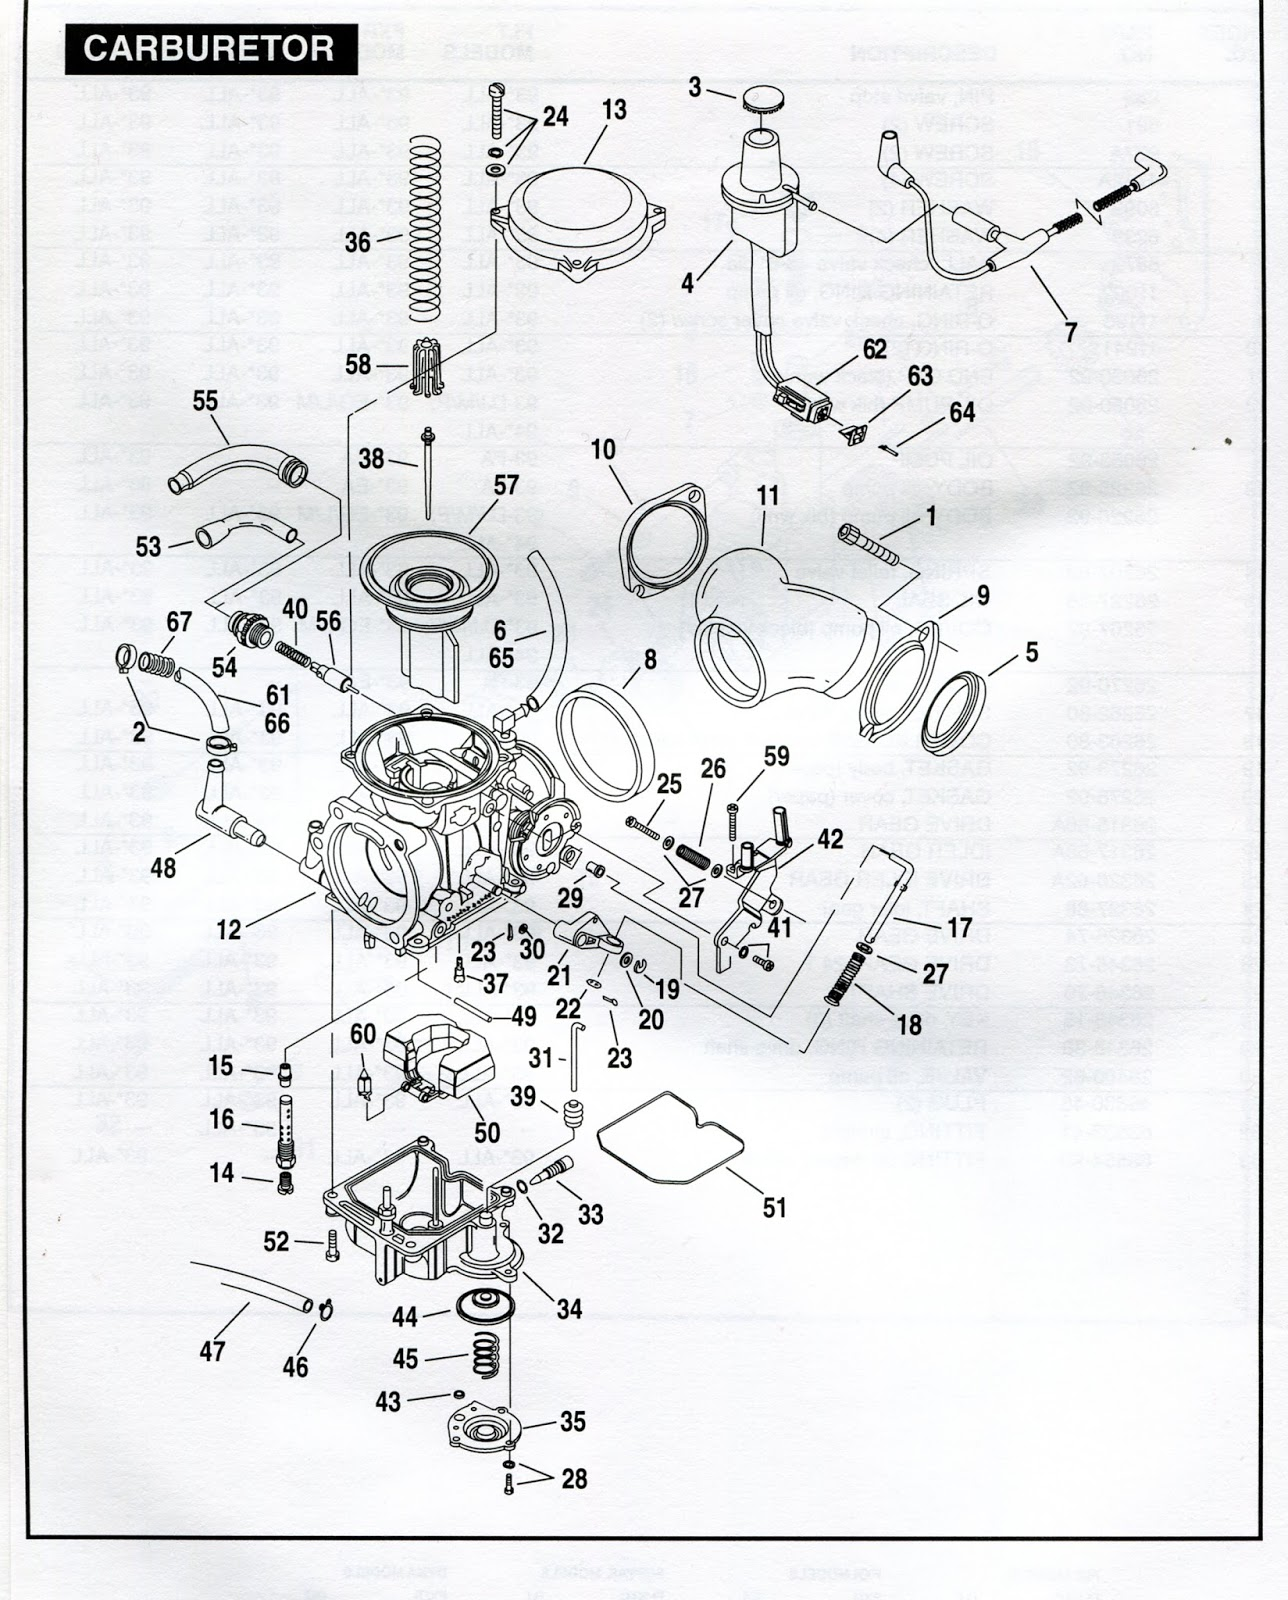 harley davidson carburetor diagram wiring diagram week 94 harley carburetor diagram [ 1288 x 1600 Pixel ]